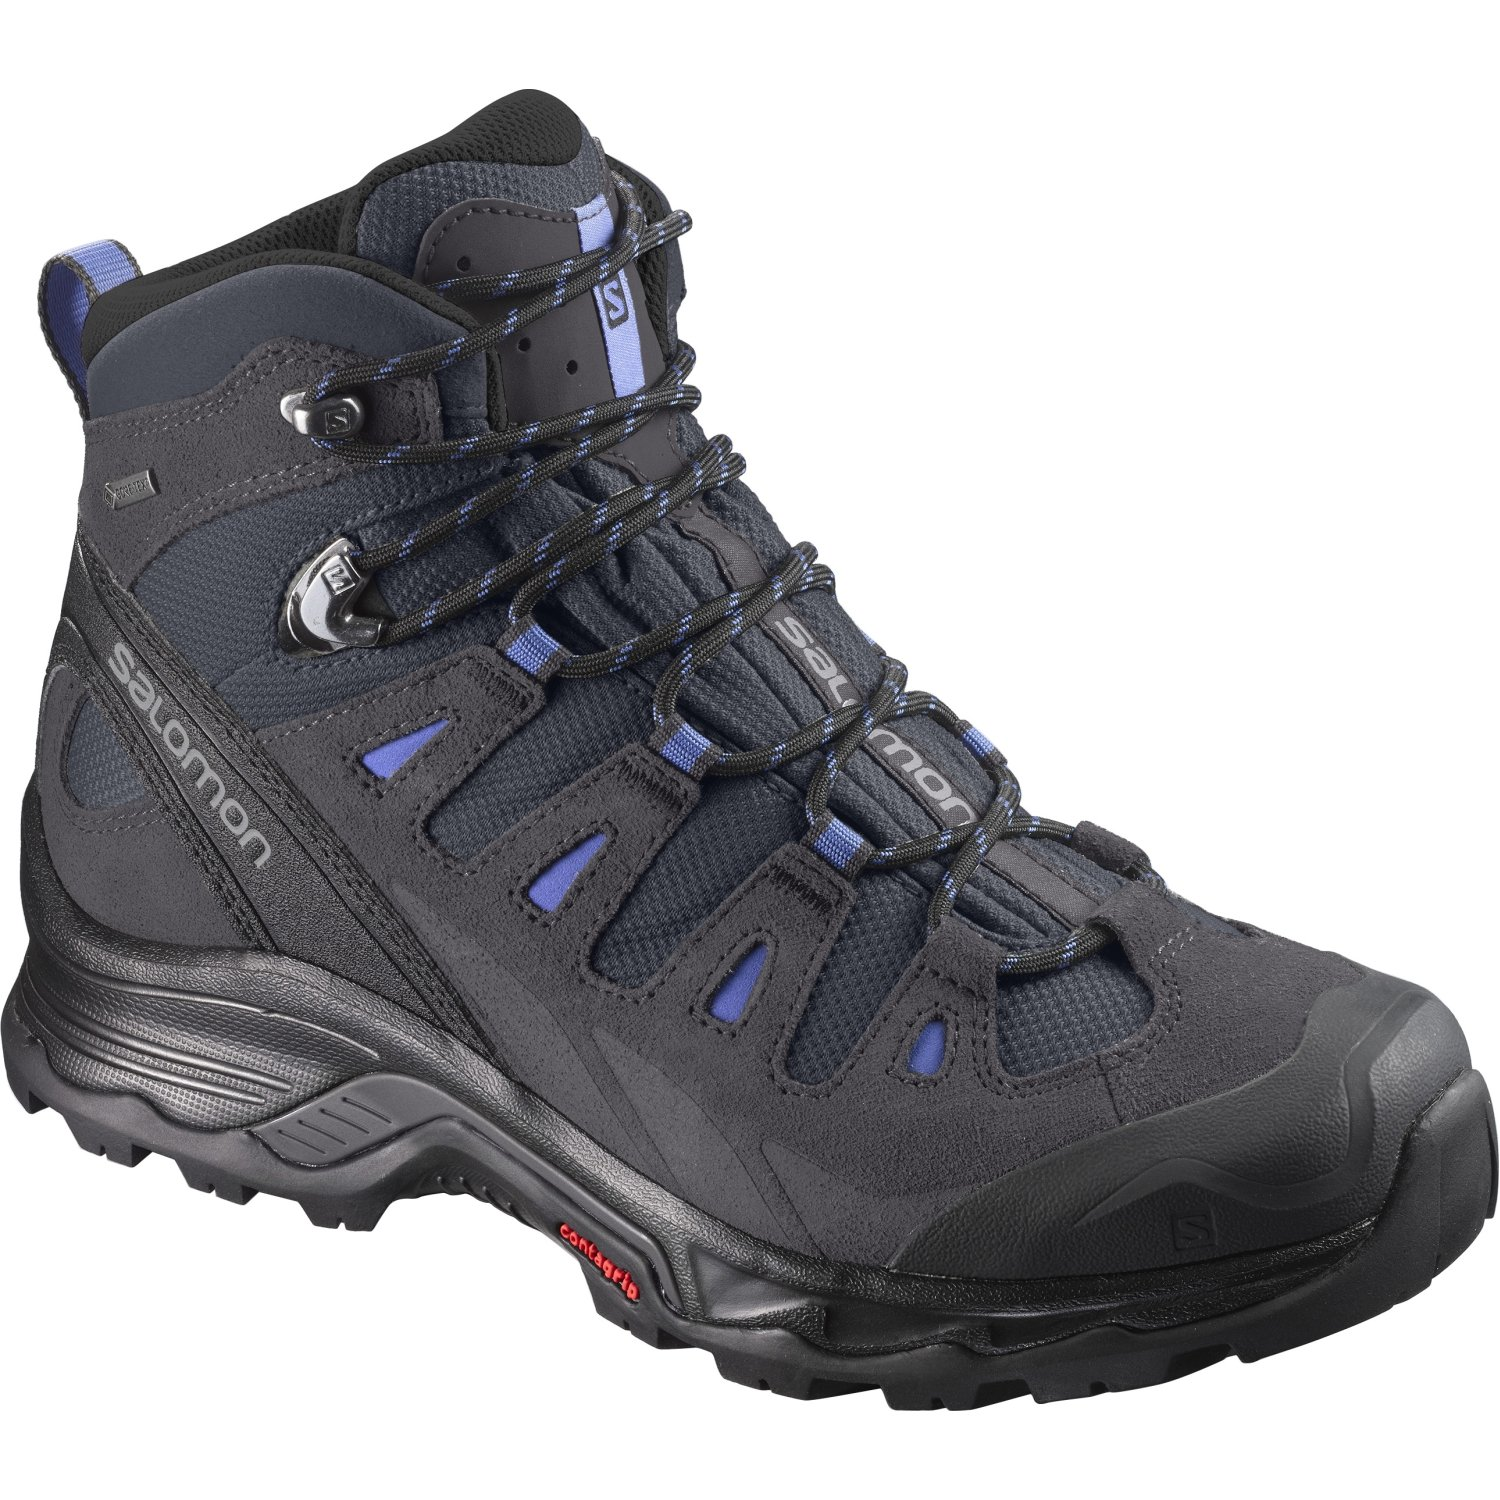 Salomon Women's Quest Prime GTX W Backpacking Boot B01NA9VEZD 5.5 M US|India Ink/Phantom/Amparo Blue